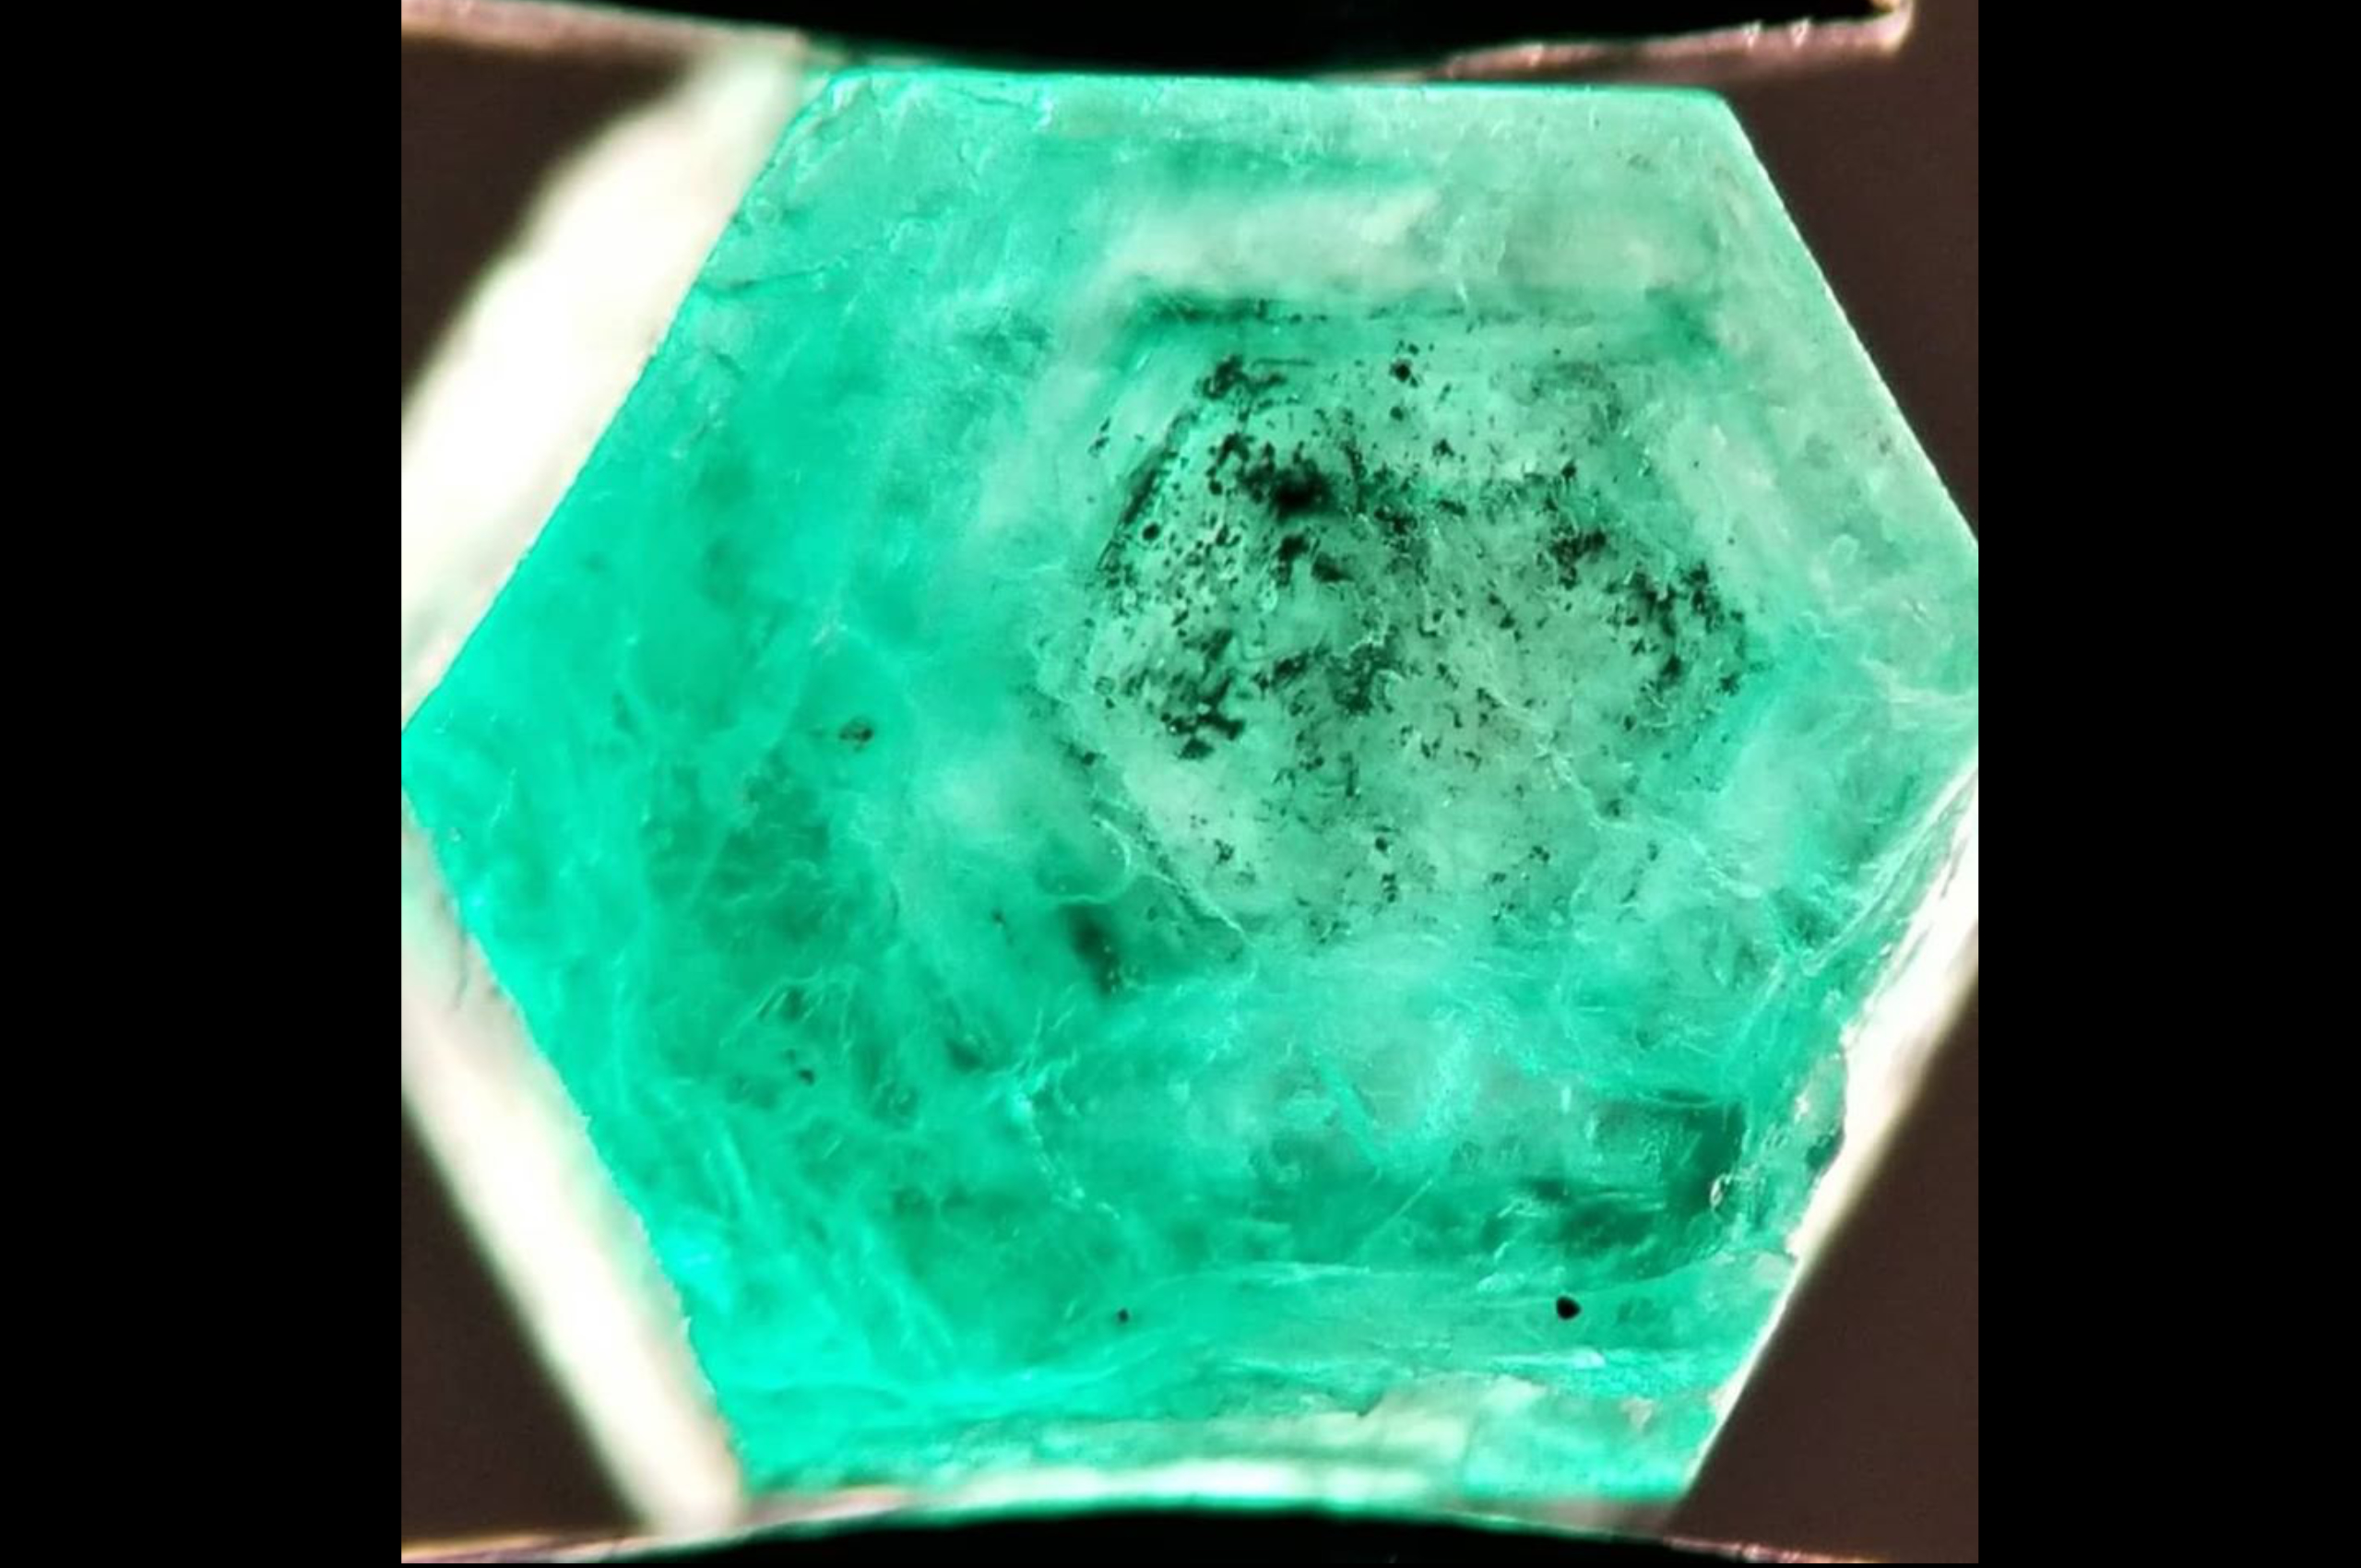 Probably Biotite inclusions in rough Emerald from Swat. Photo by Fahad Abbas Sheikh